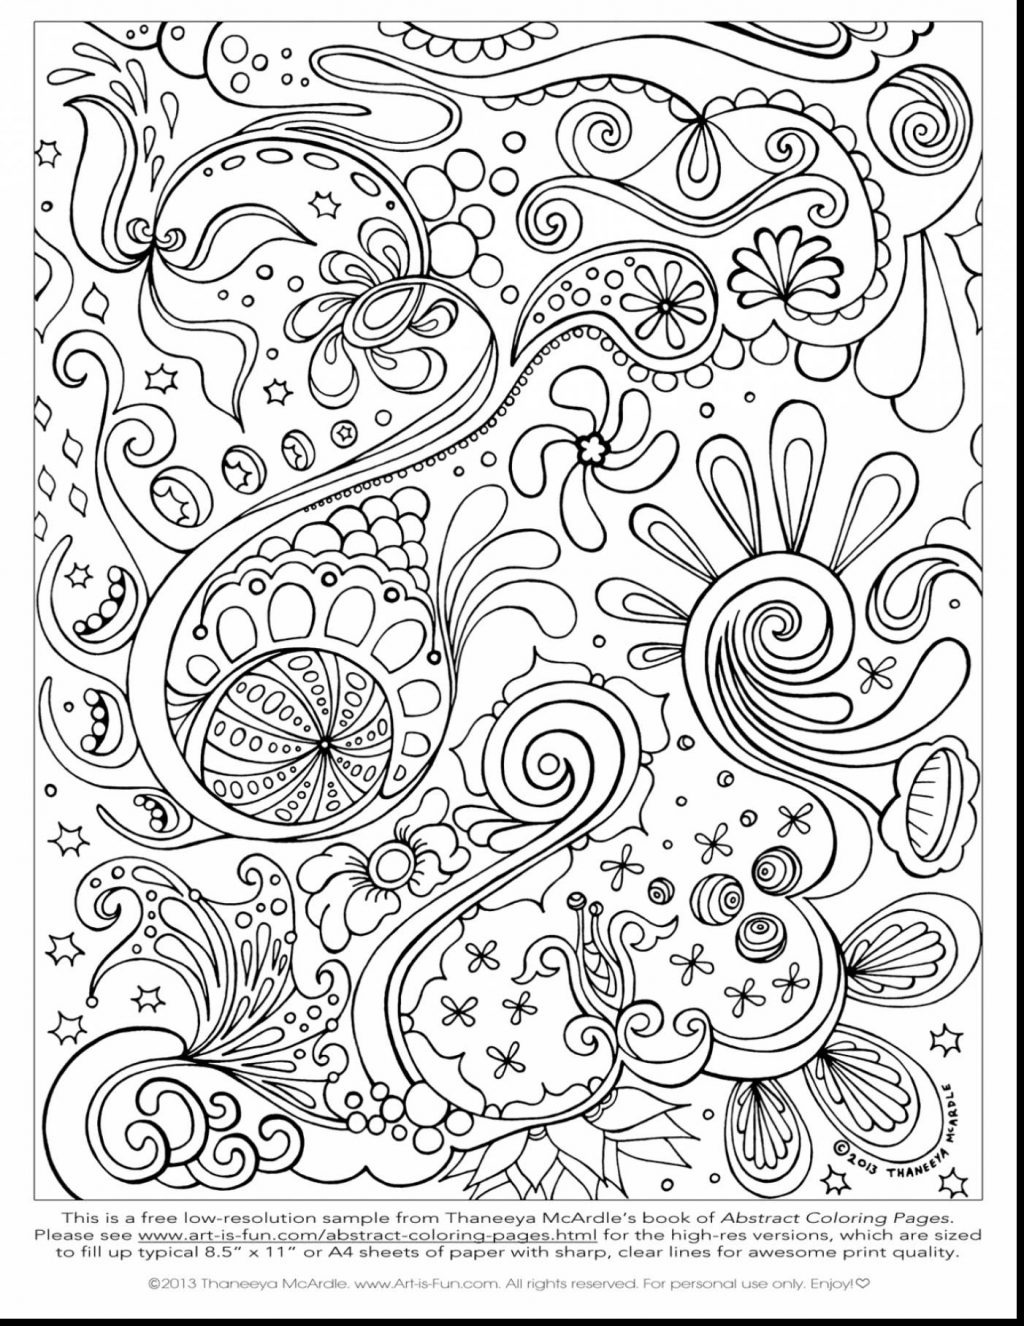 Coloring Page ~ Coloring Page Book Pdf Free Printable Books Stress - Free Printable Coloring Books Pdf